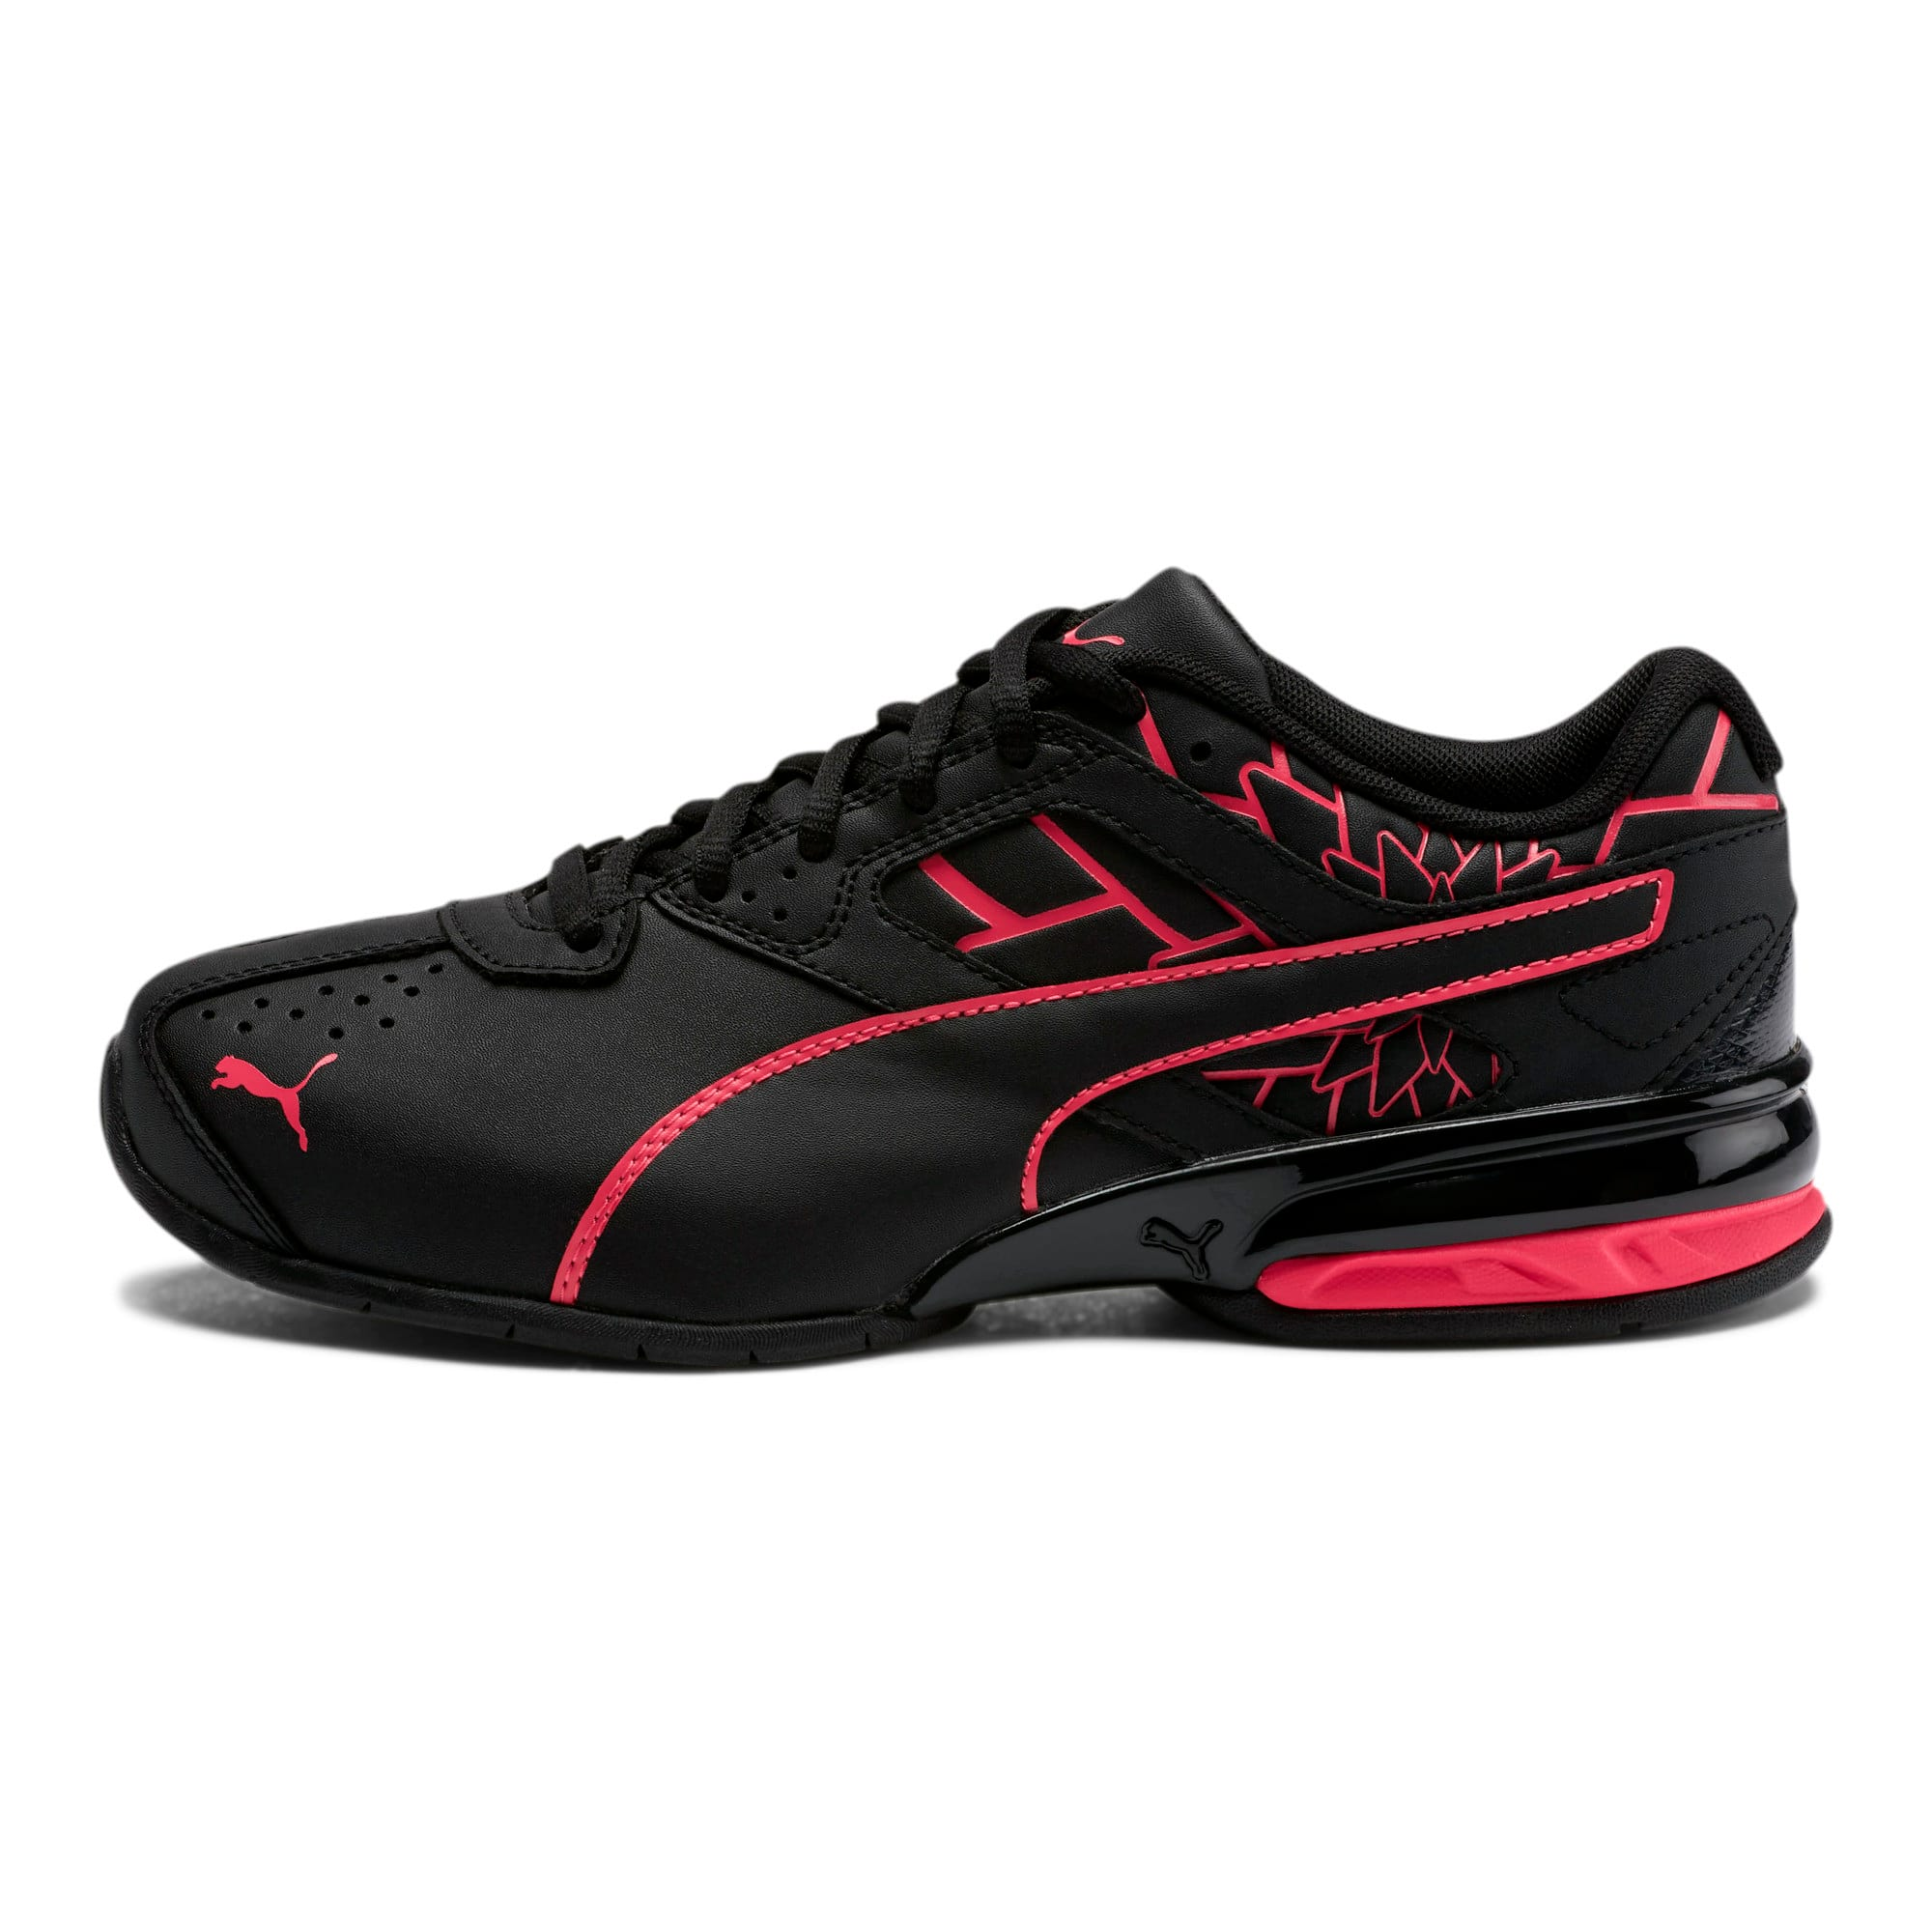 Tazon 6 Graphic Women's Sneakers, Puma Black-Nrgy Rose, large